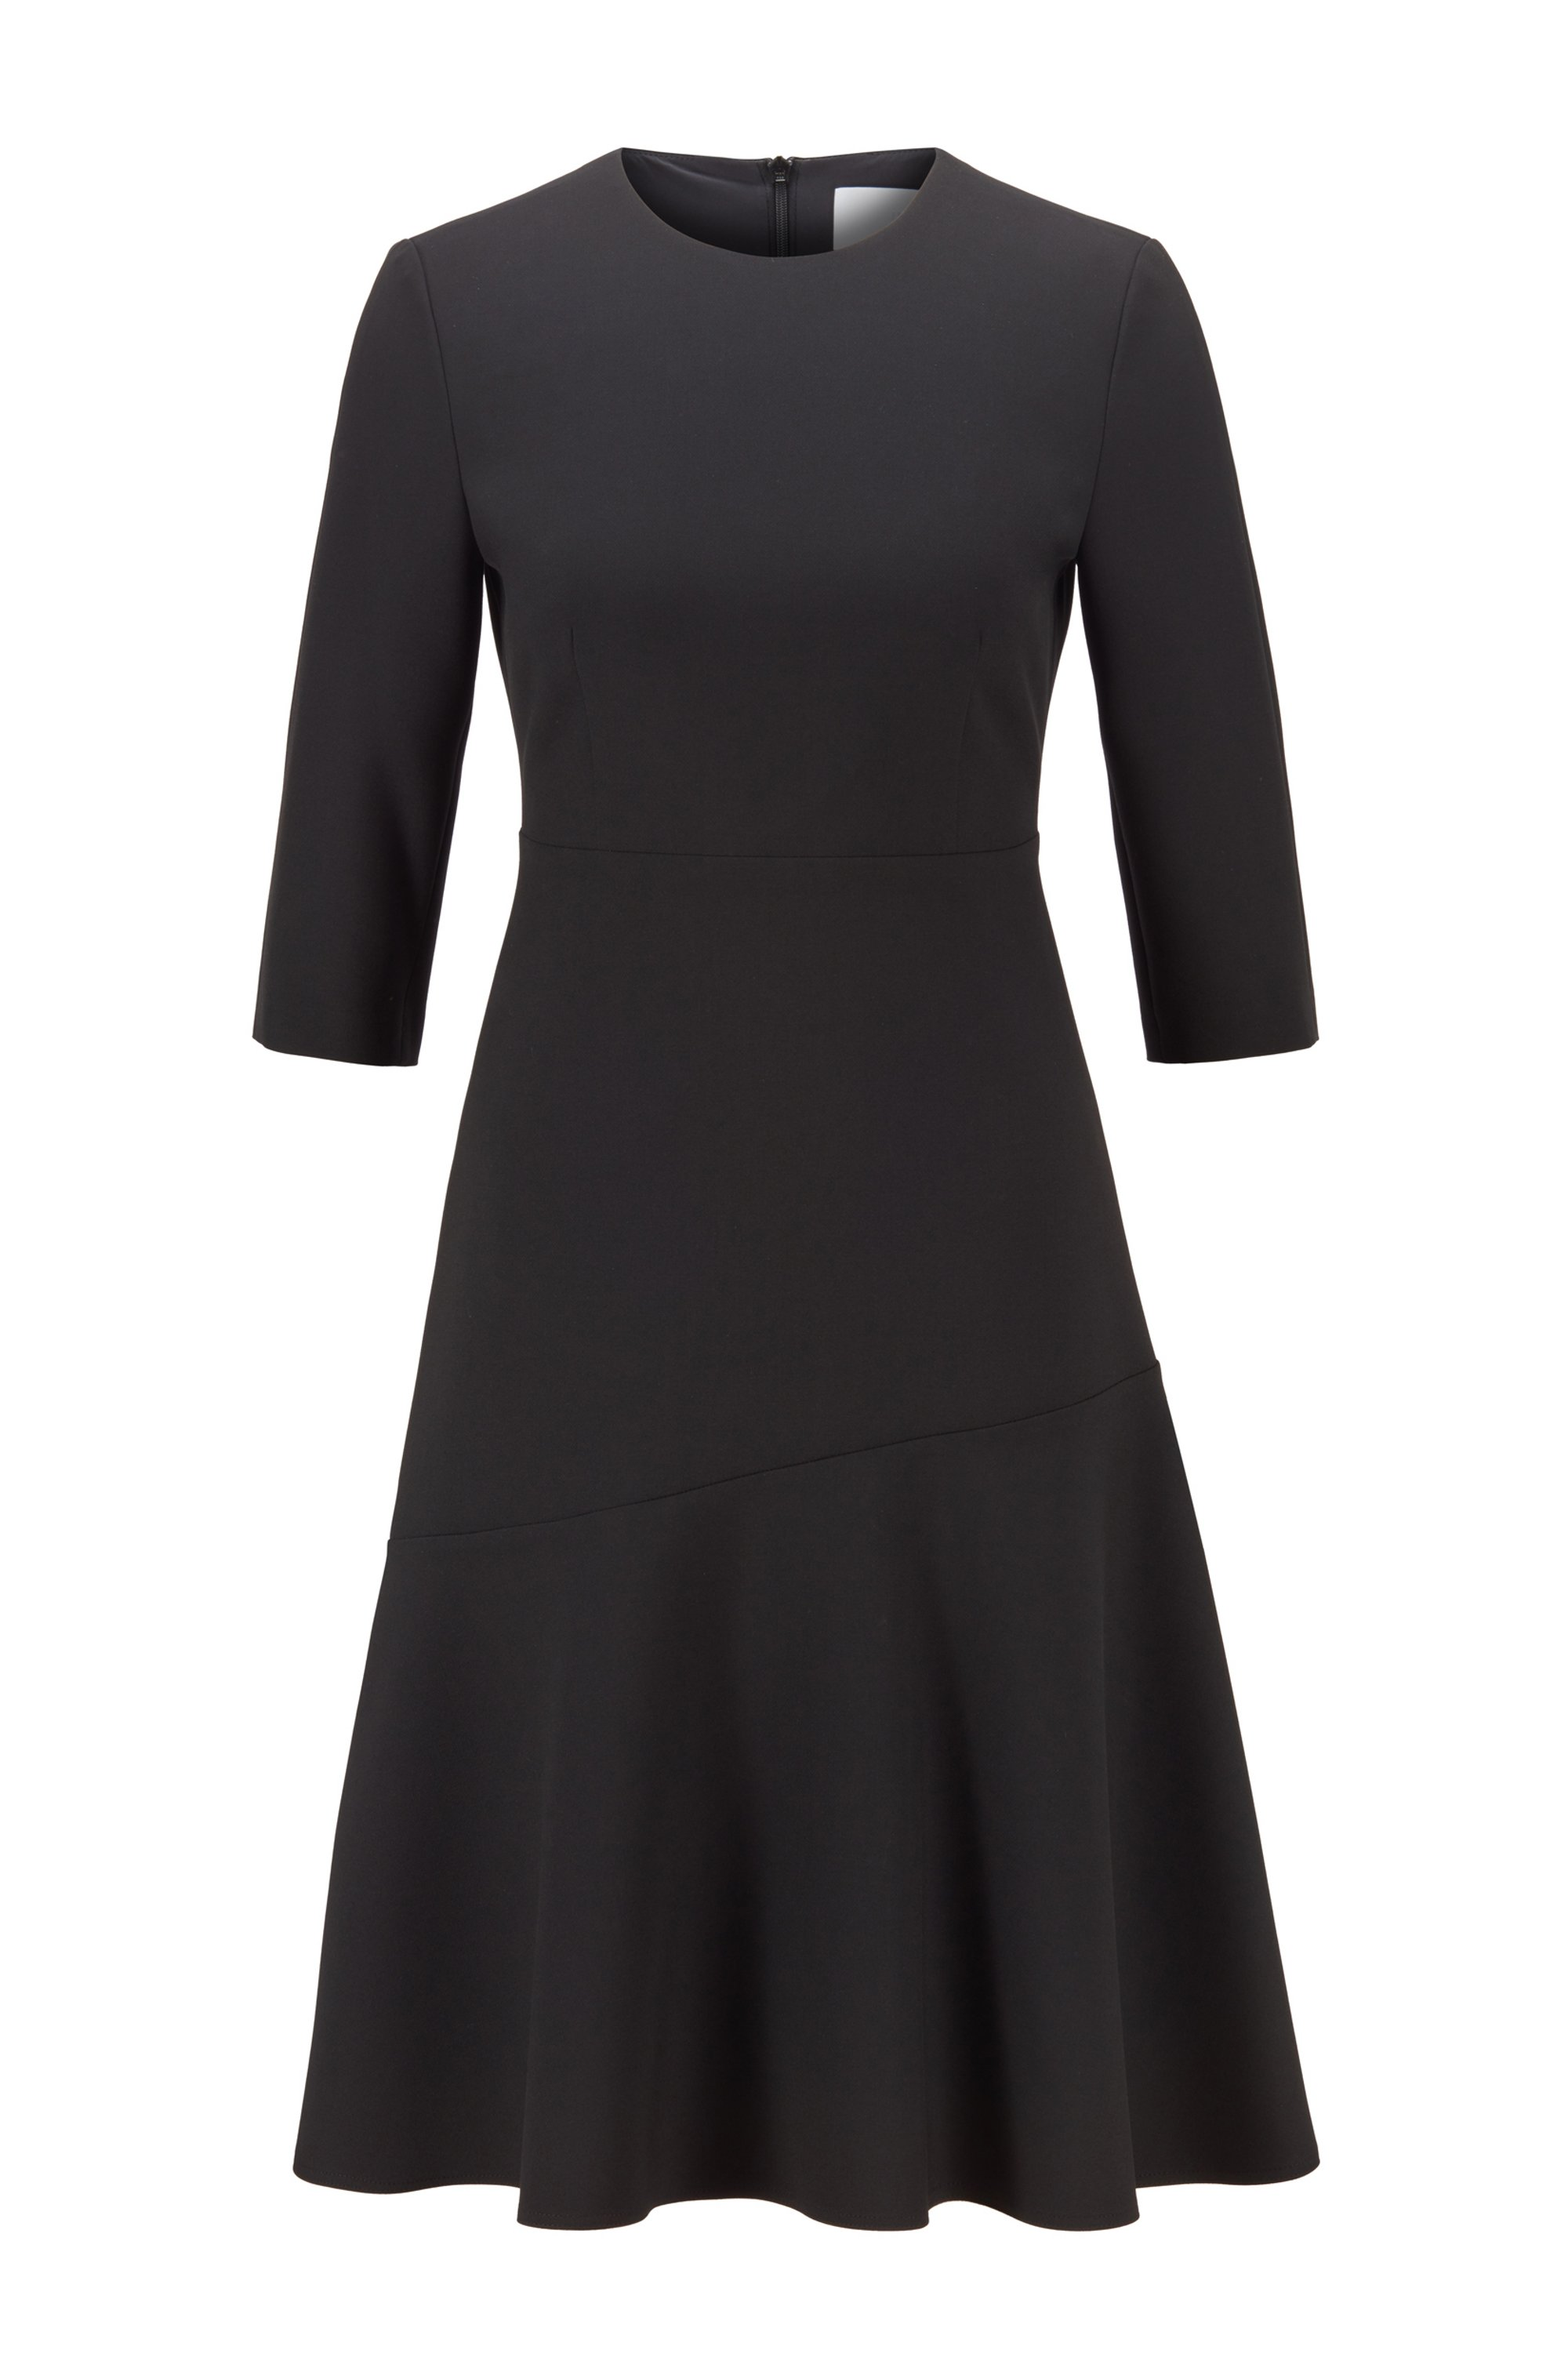 Scoop-neck A-line dress in Portuguese stretch fabric, Black